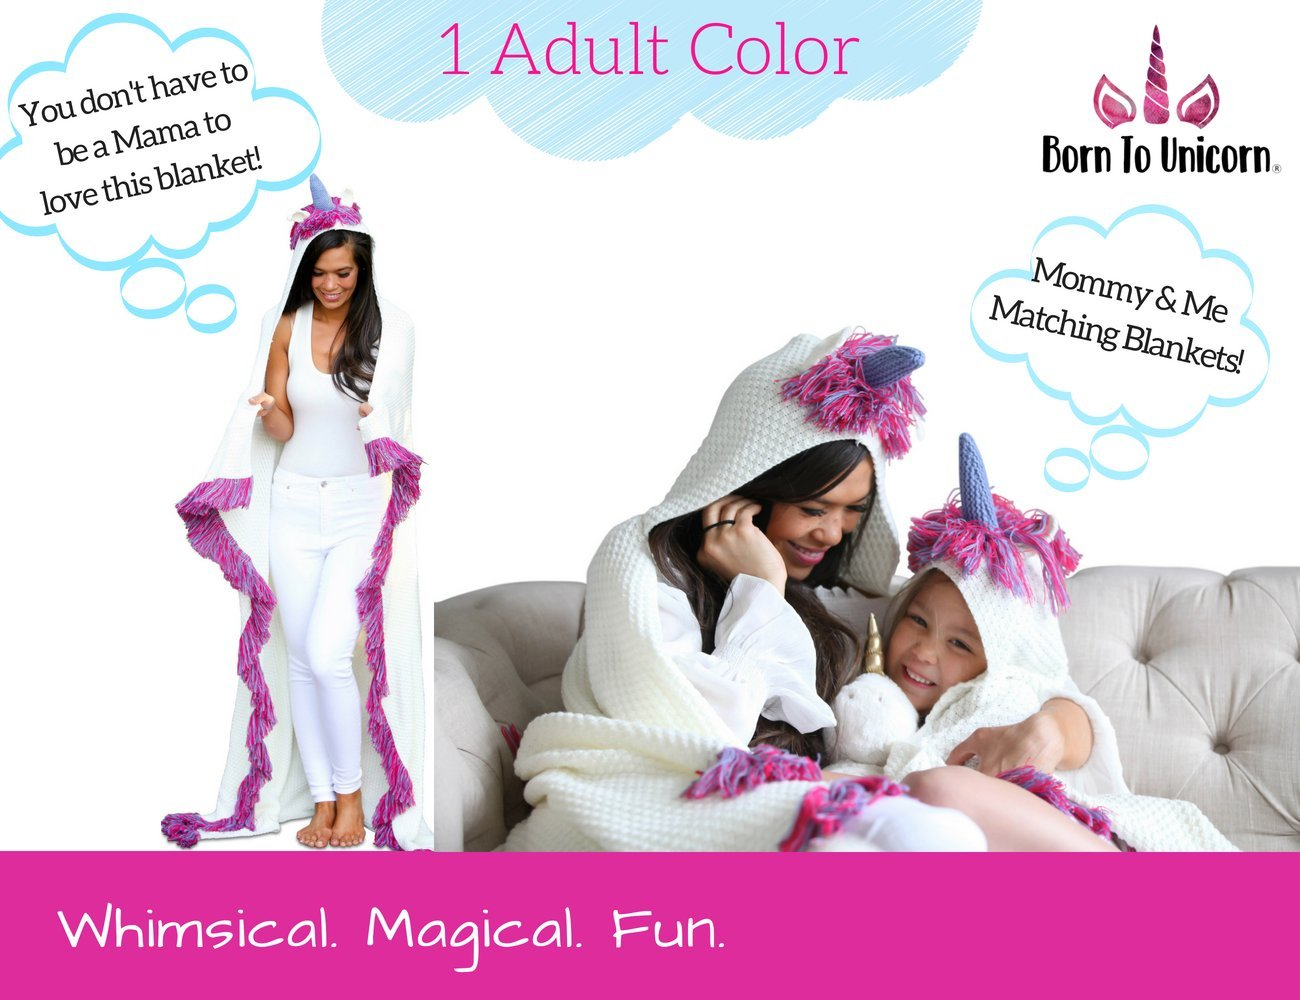 Born To Unicorn Blanket for Girls- Hooded, Kids Pink, Purple Wearable Crochet Knit w/Hood Throw Blankets Wrap, Toddlers Cute Plush Knitted Hoodie, Soft Kids Blanket Gift, Cozy Magic Cloak w/Hood by Born To Unicorn (Image #8)